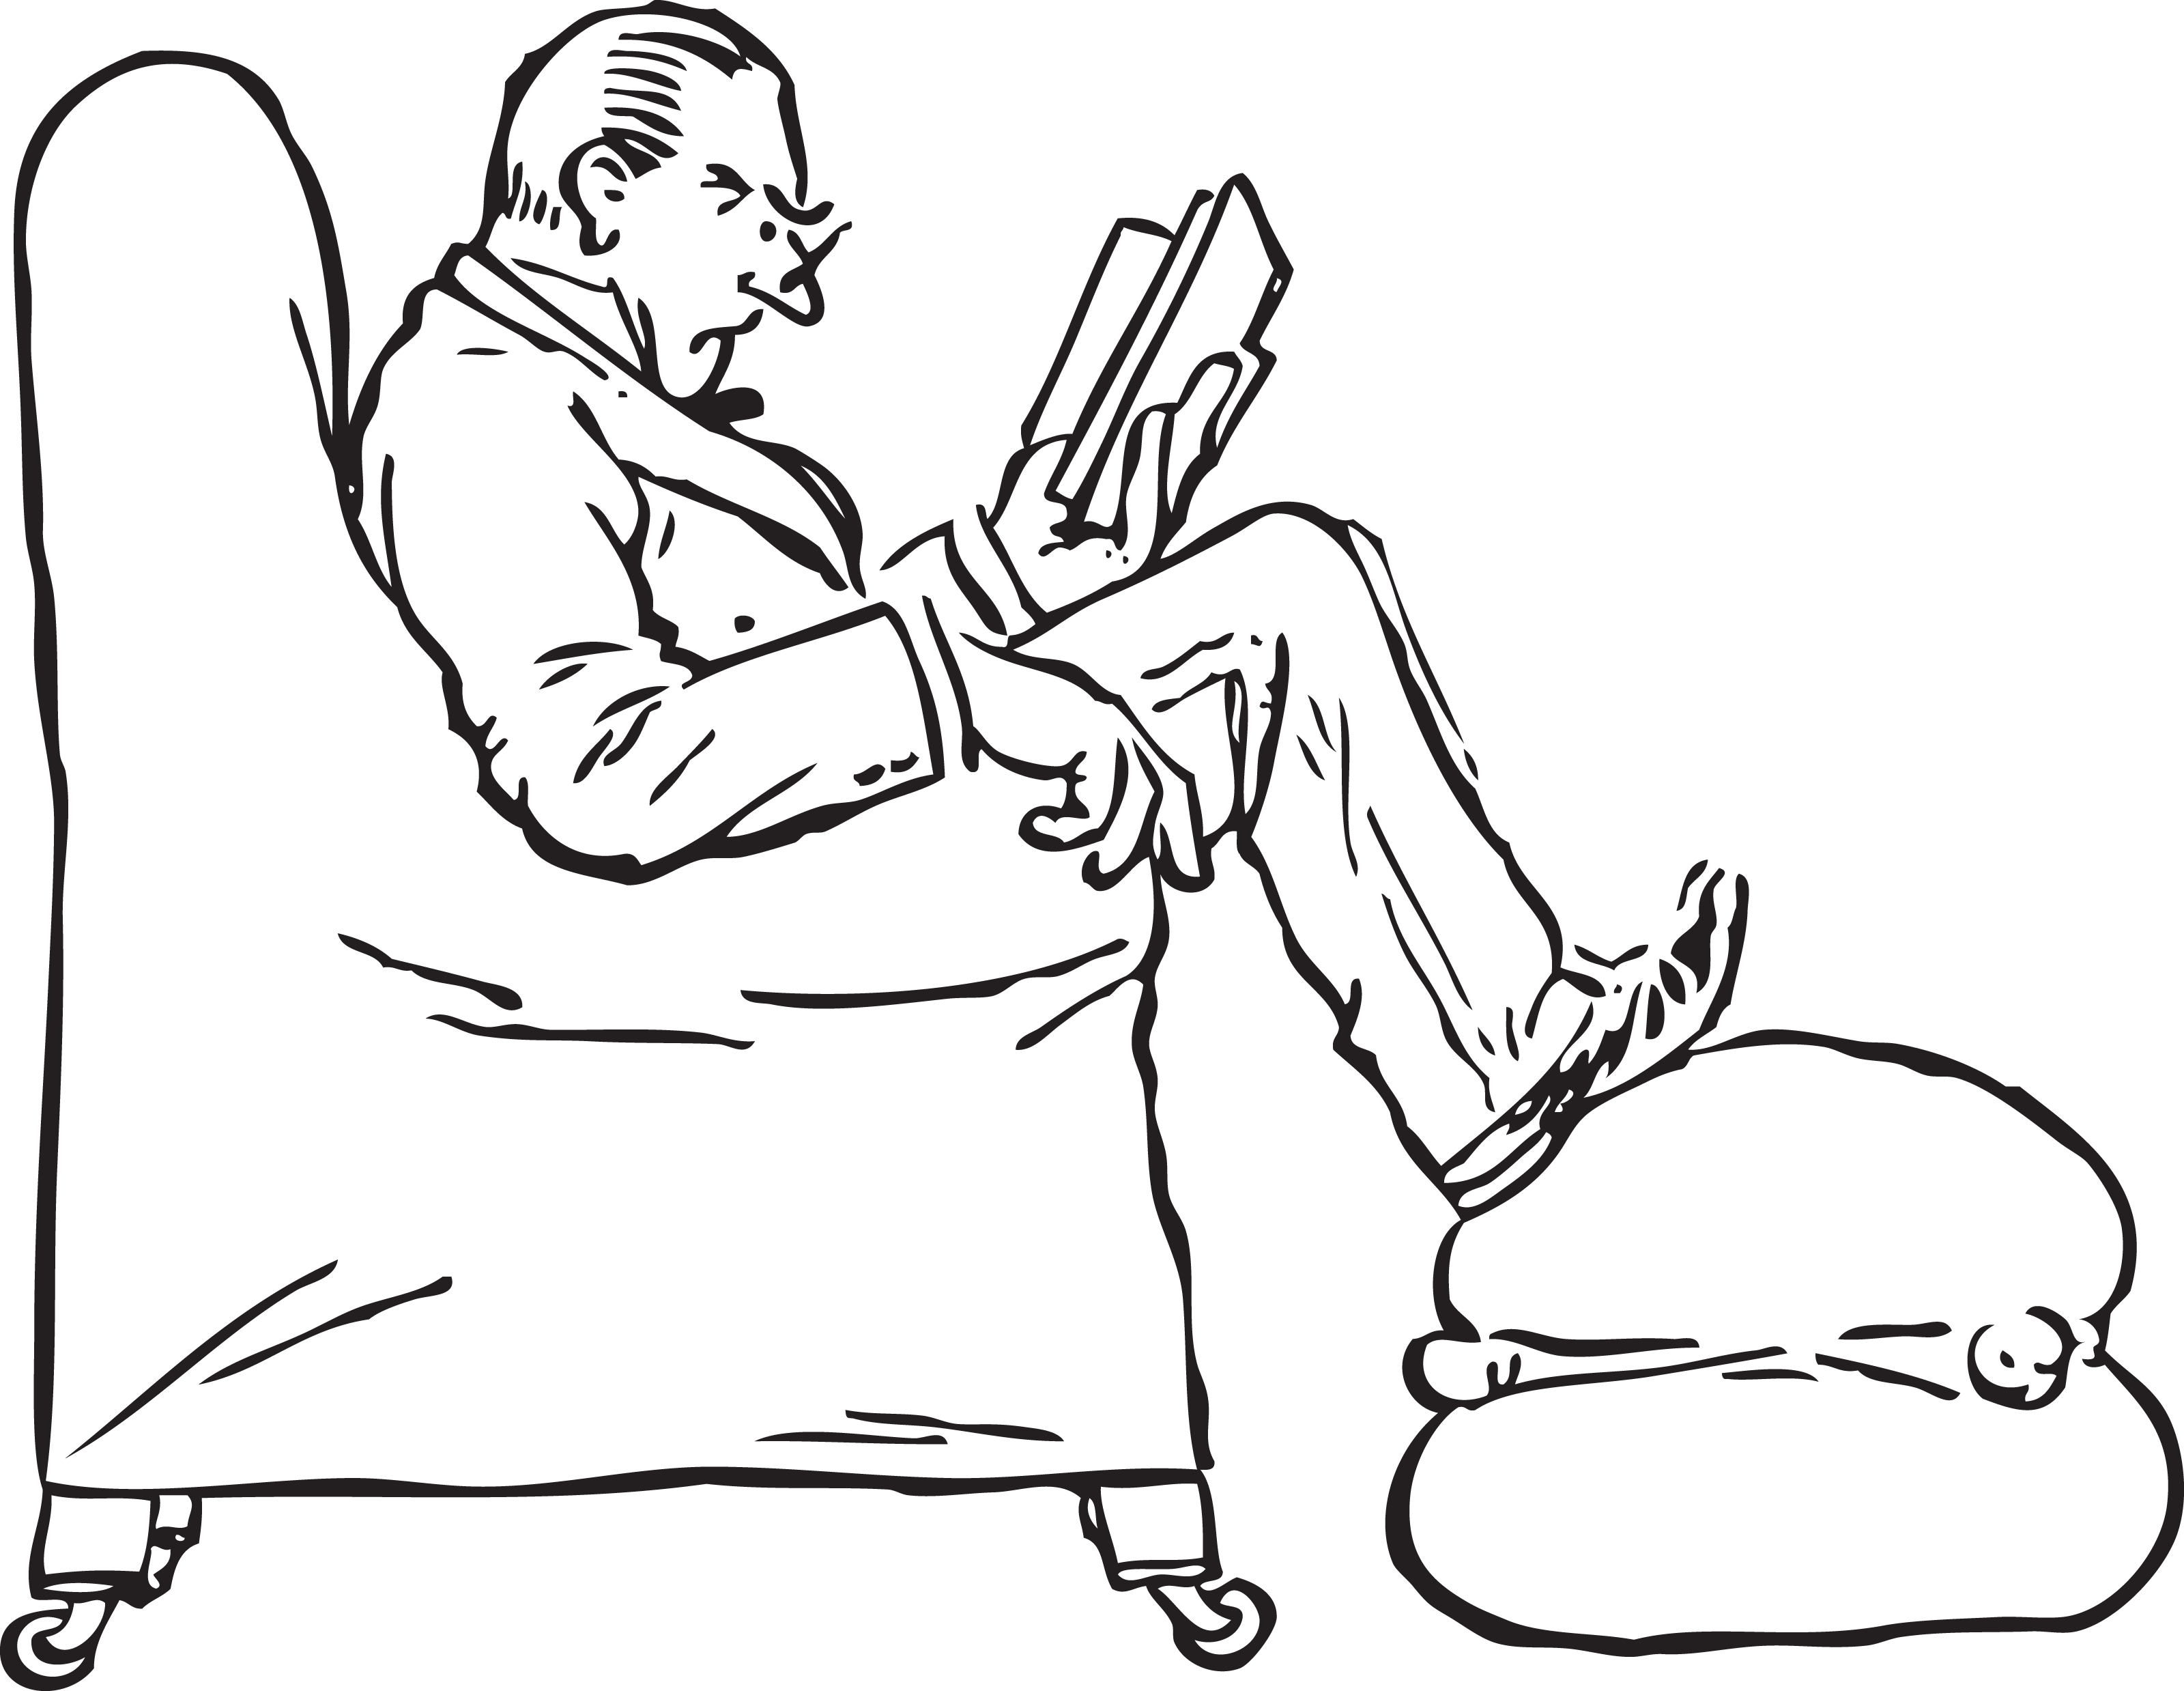 Man reading book clipart clip black and white download Free Retro Clipart Illustration Of Man Reading Book While Puppy Nail ... clip black and white download